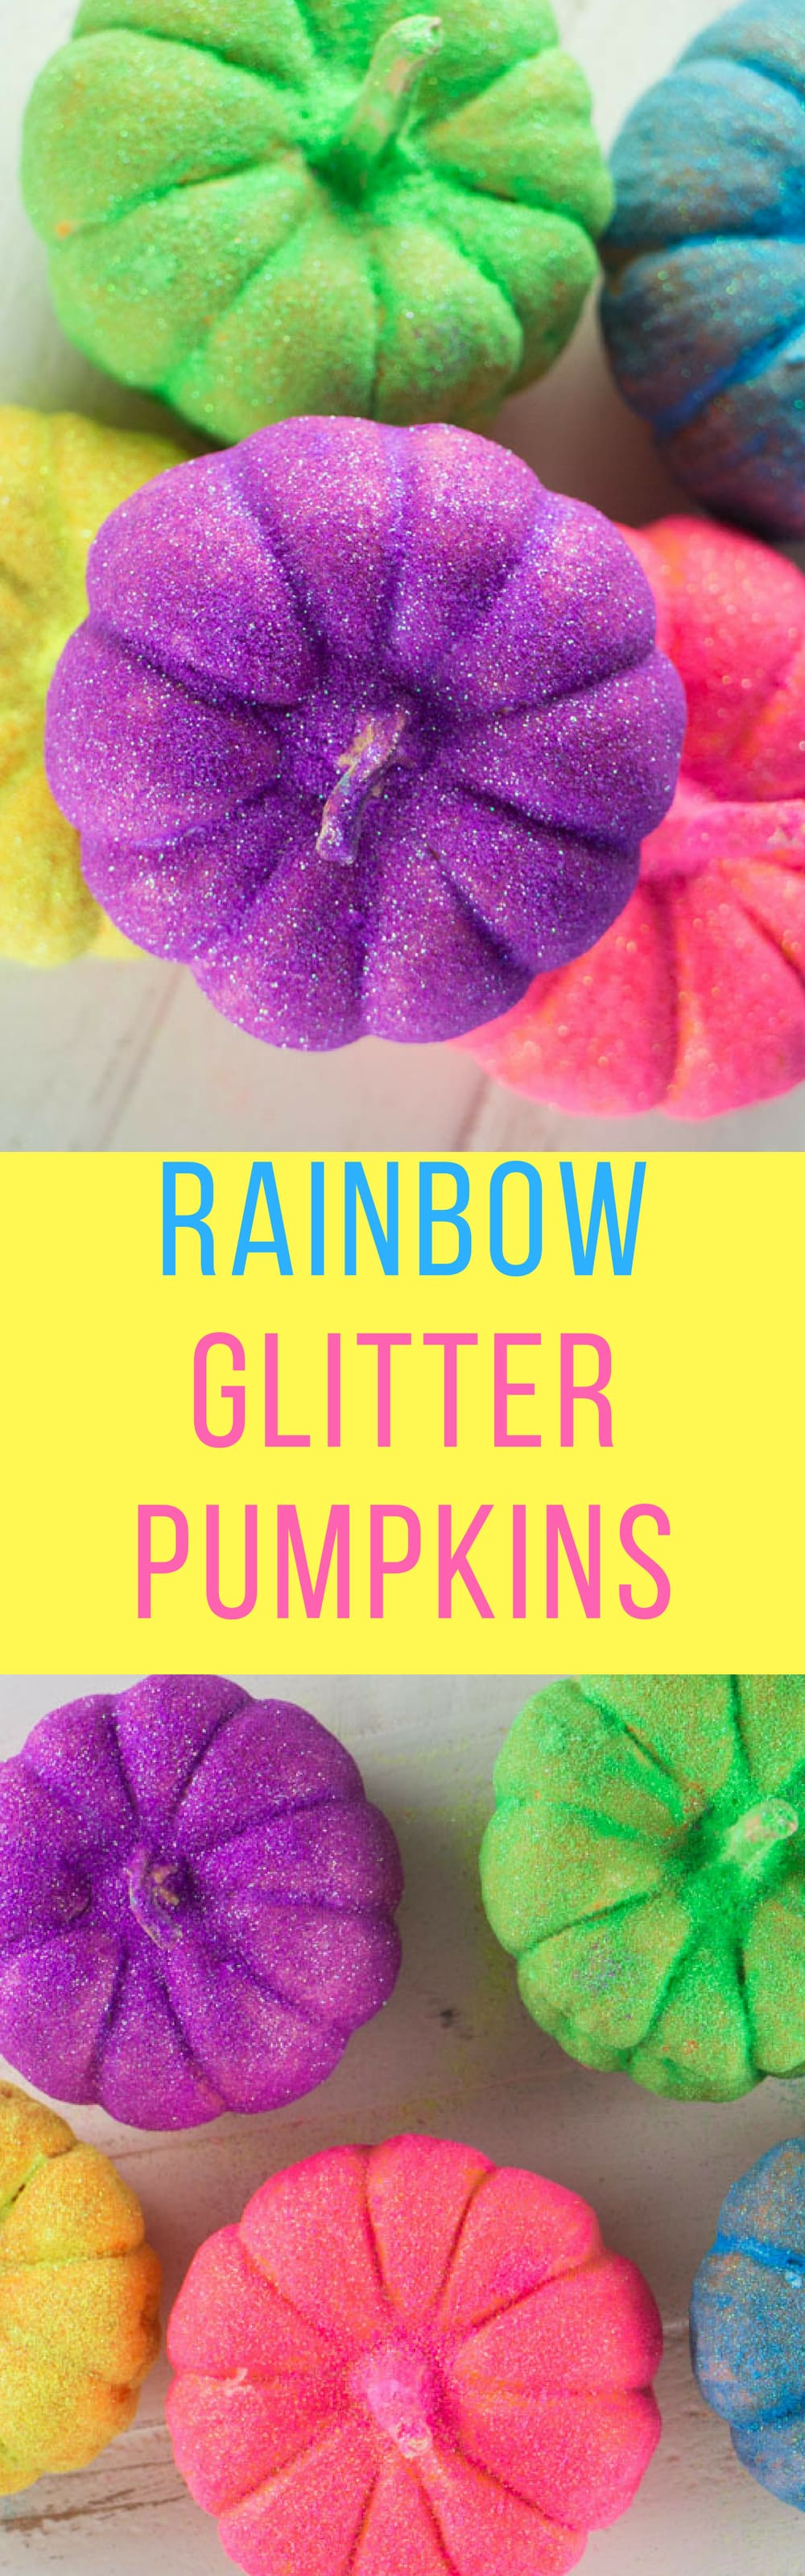 How to Make QUICK Rainbow GLITTER Pumpkins. Follow these easy Step By Step Instructions on how to make a pumpkin Halloween Craft! We love adding neon color to our Halloween decorations! This is a great arts and crafts activity for preschoolers!